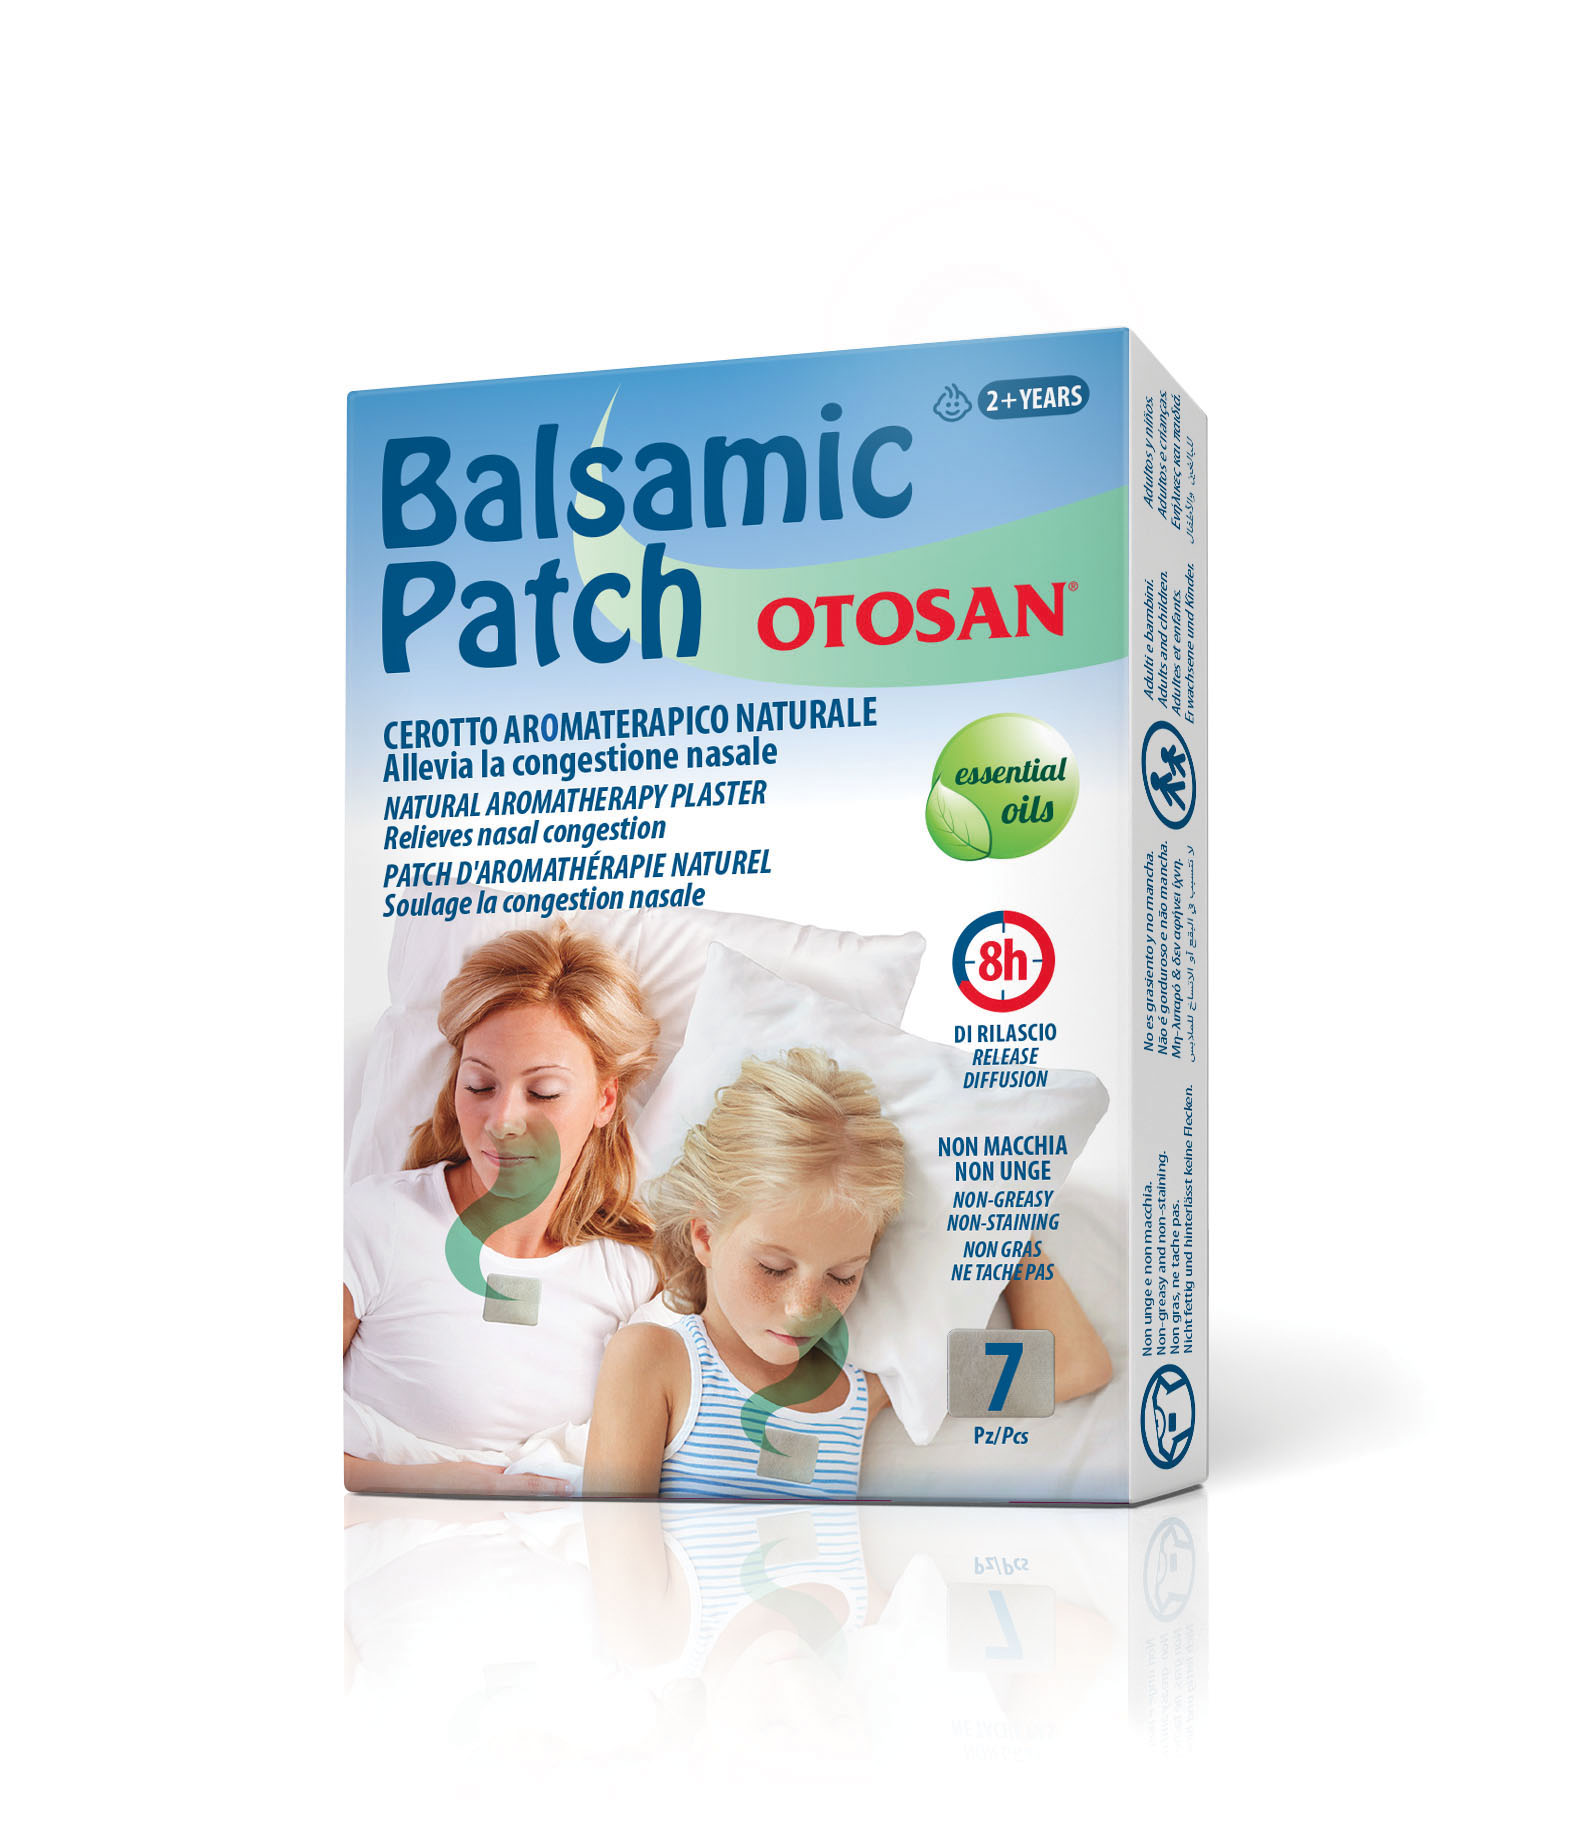 Otosan_Balsamic_Patch___Pack__1592292208_503